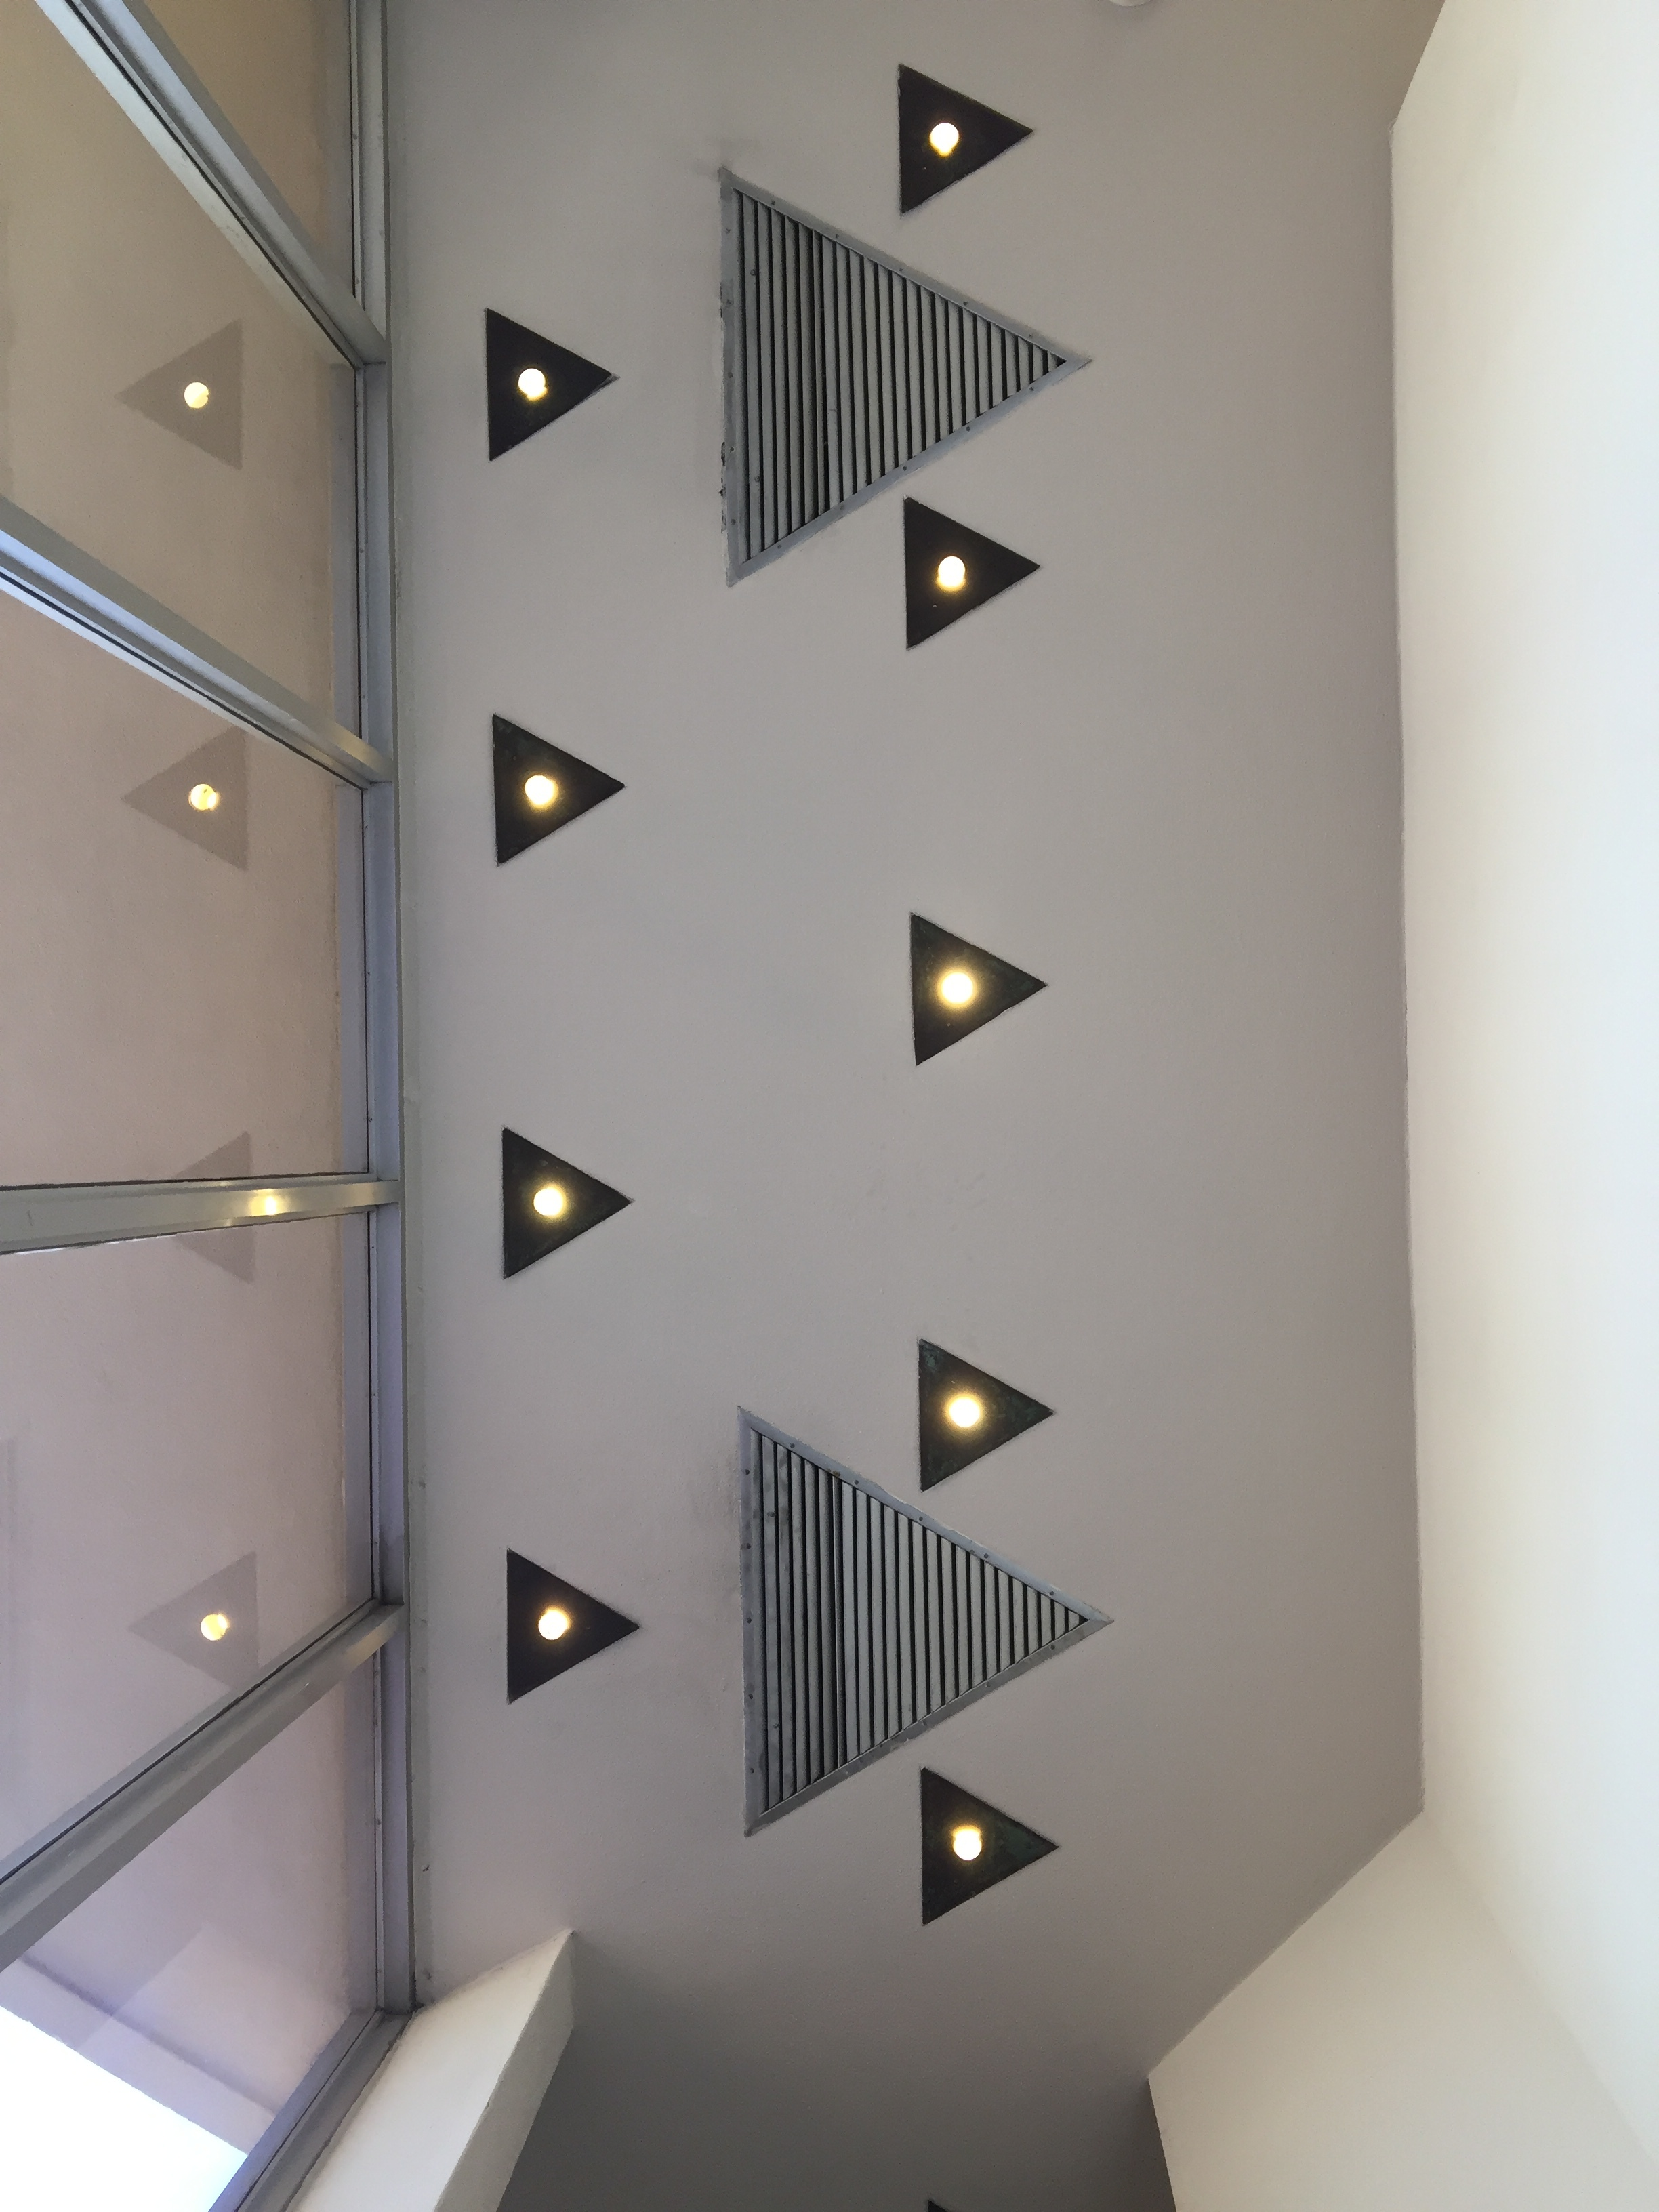 Price Tower, Bartlesville, OK